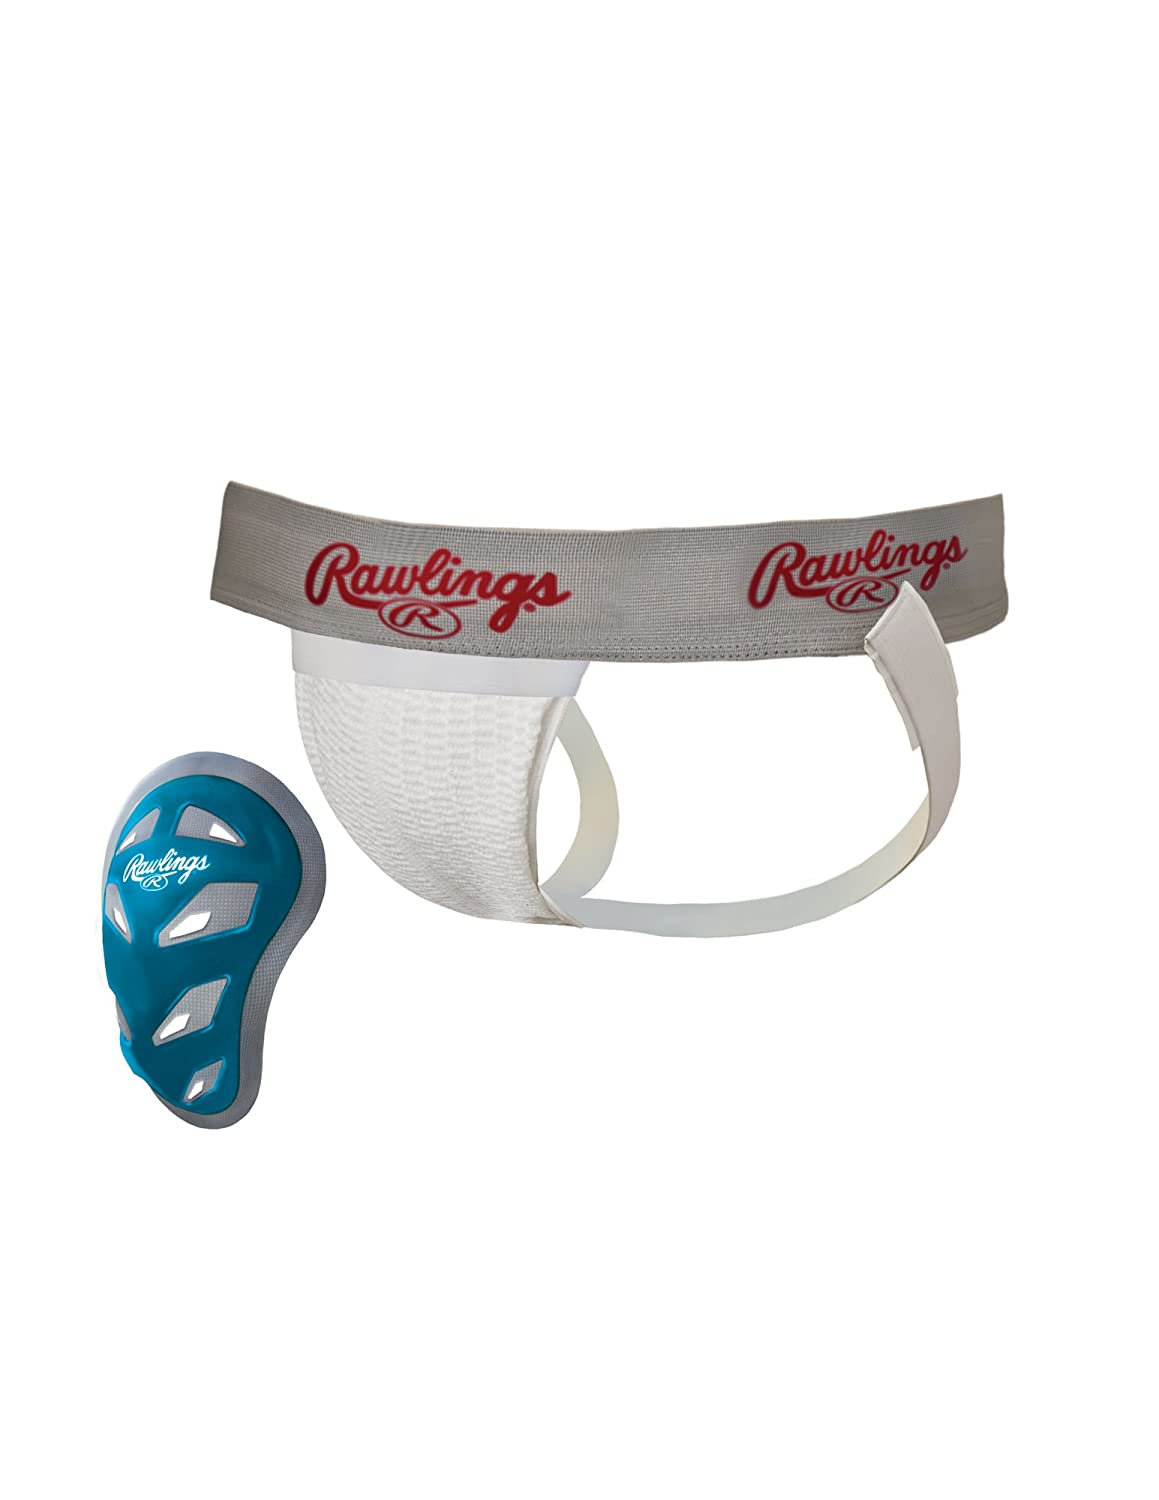 Adult Athletic Supporter with Cage Cup Rawlings Sporting Goods